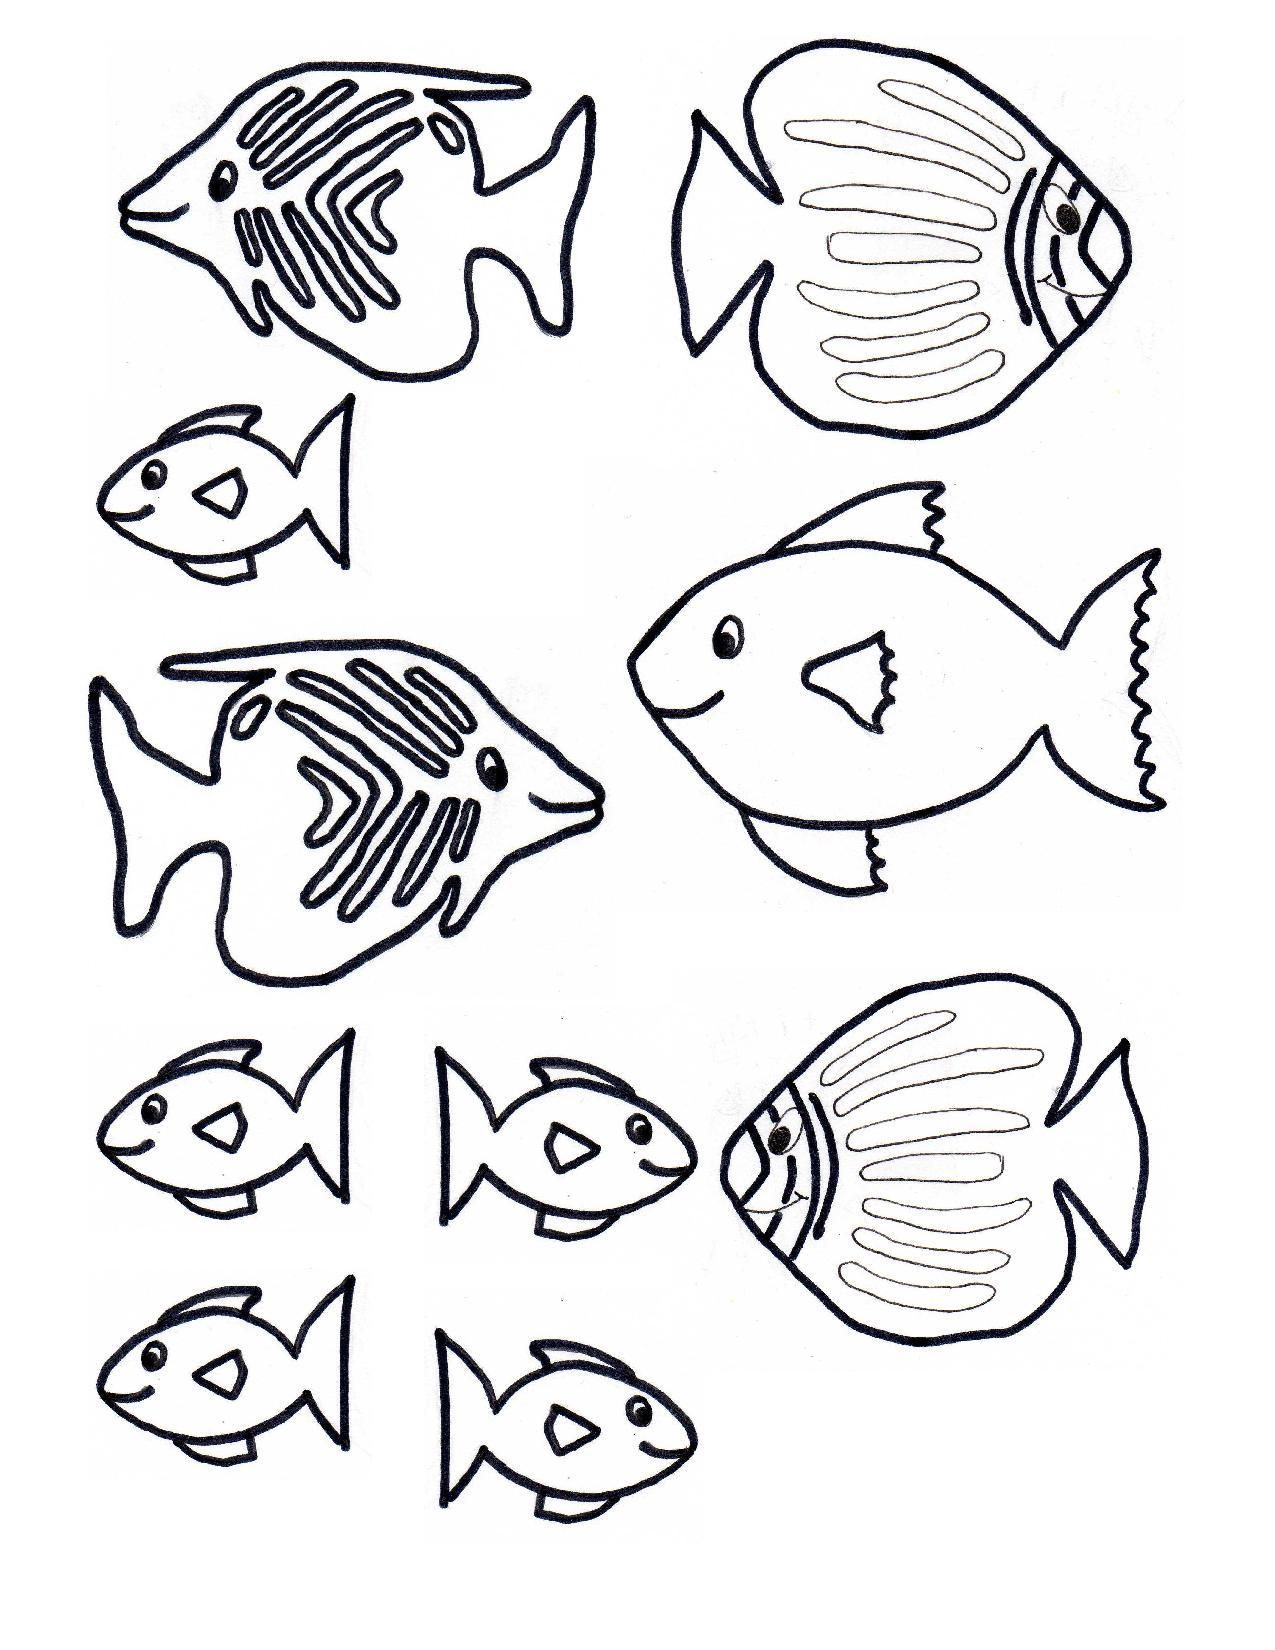 pin by malissa rogers on worksheets pinterest fish crafts